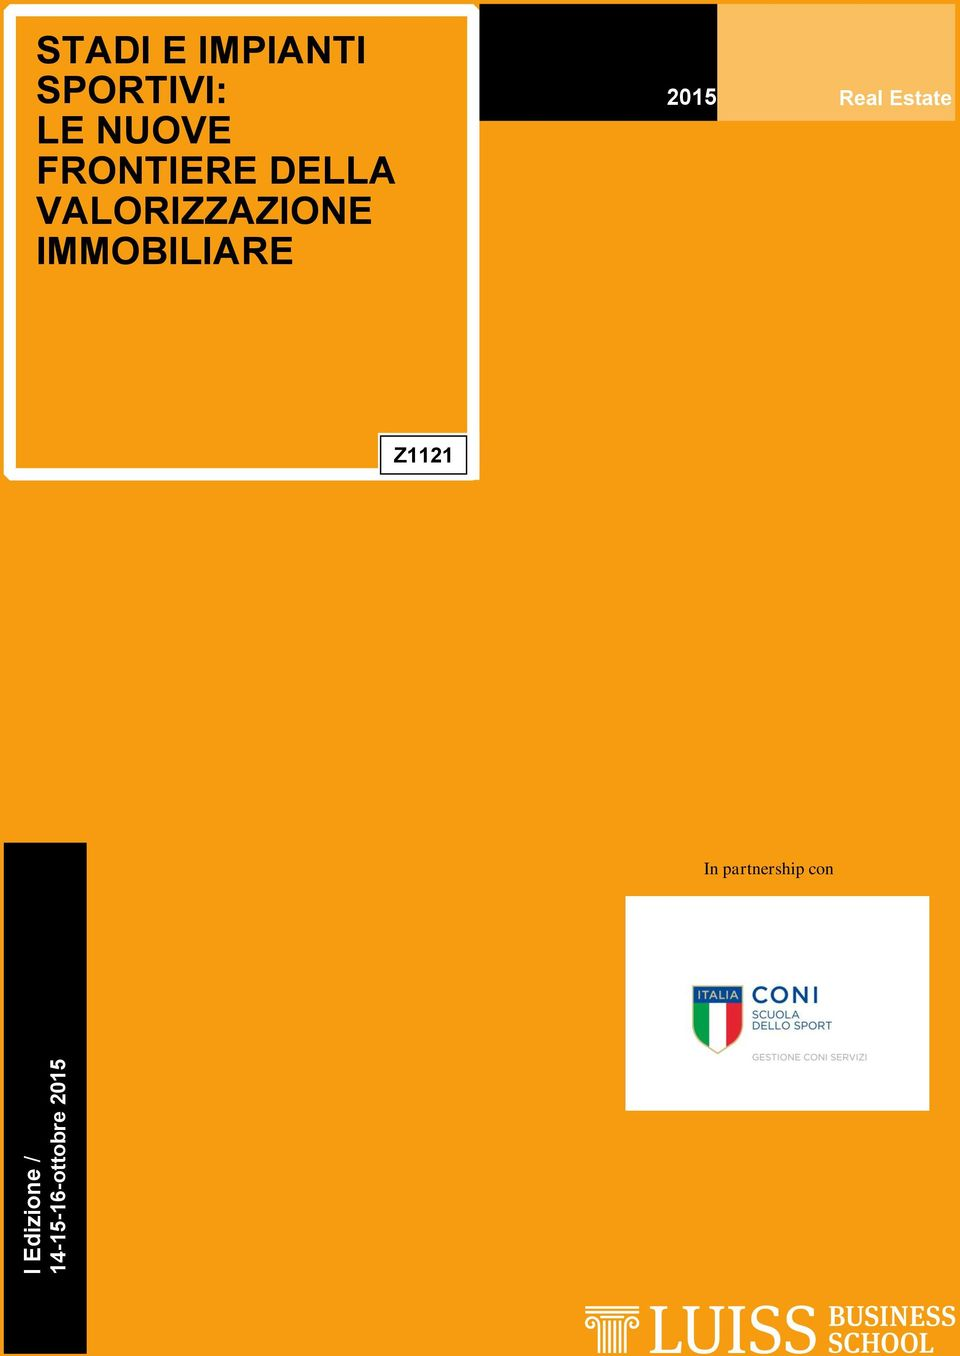 IMMOBILIARE 2015 Real Estate Z1121 In